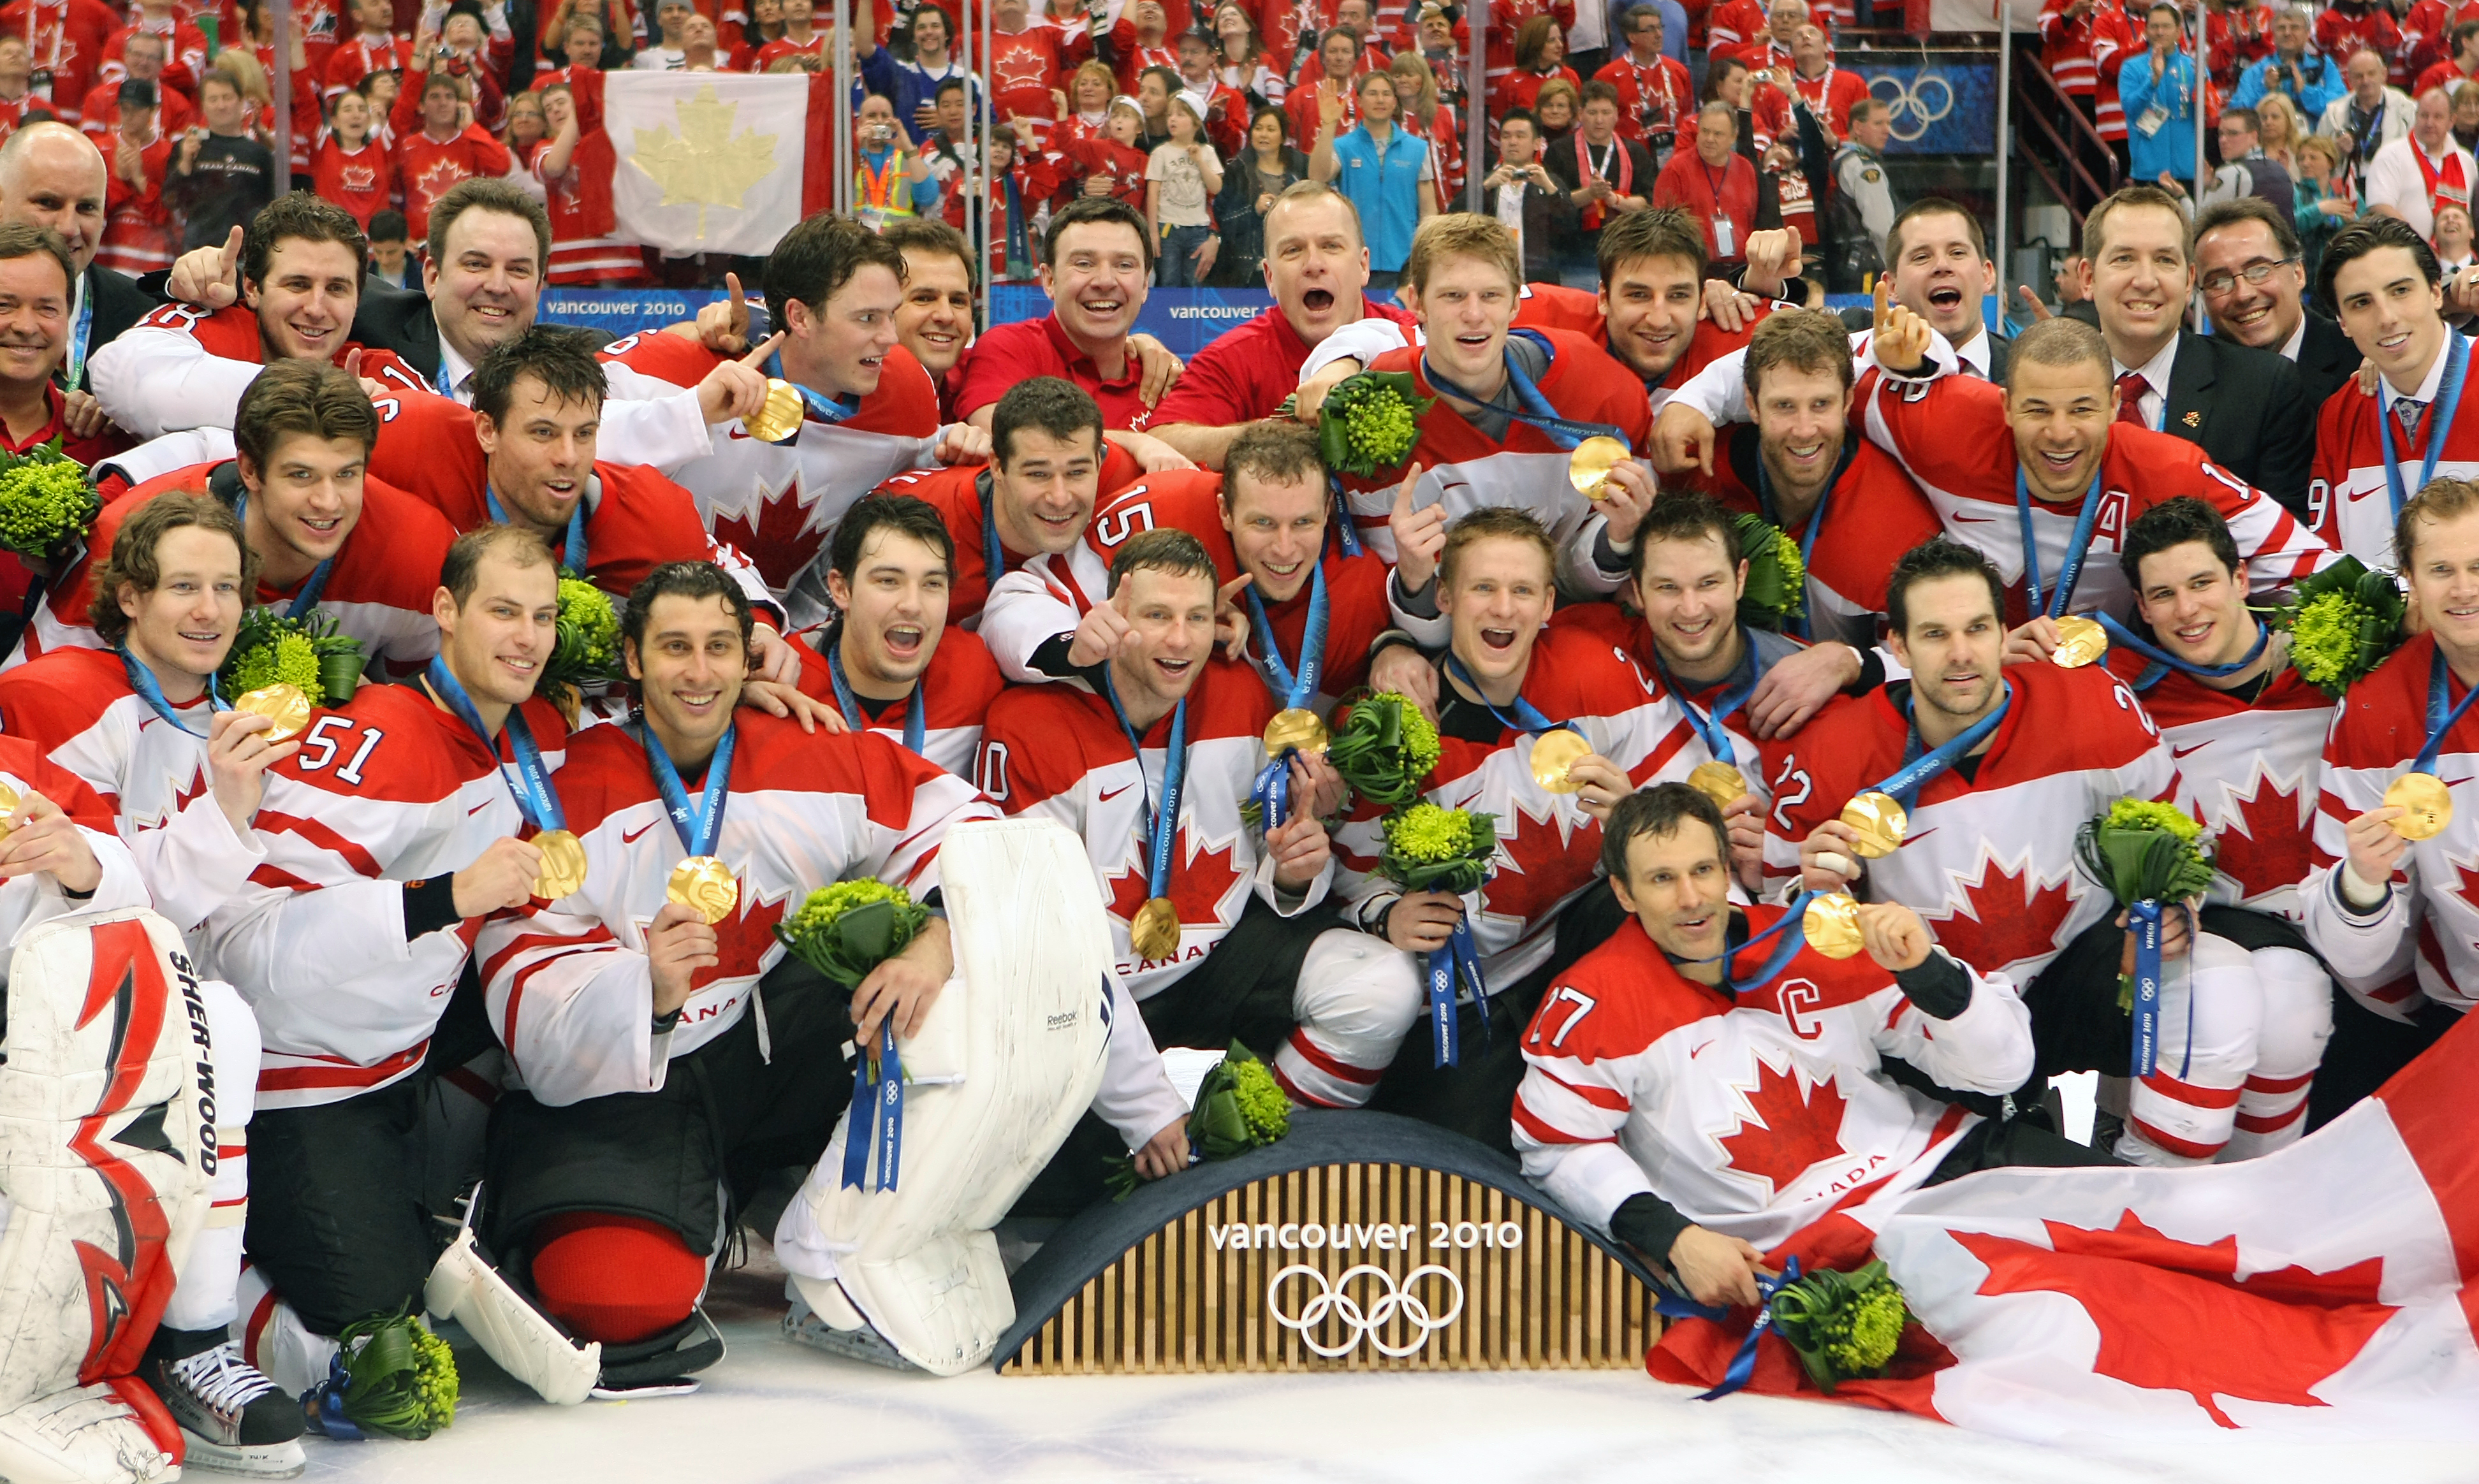 The men's hockey team pose with their gold medals at Vancouver 2010